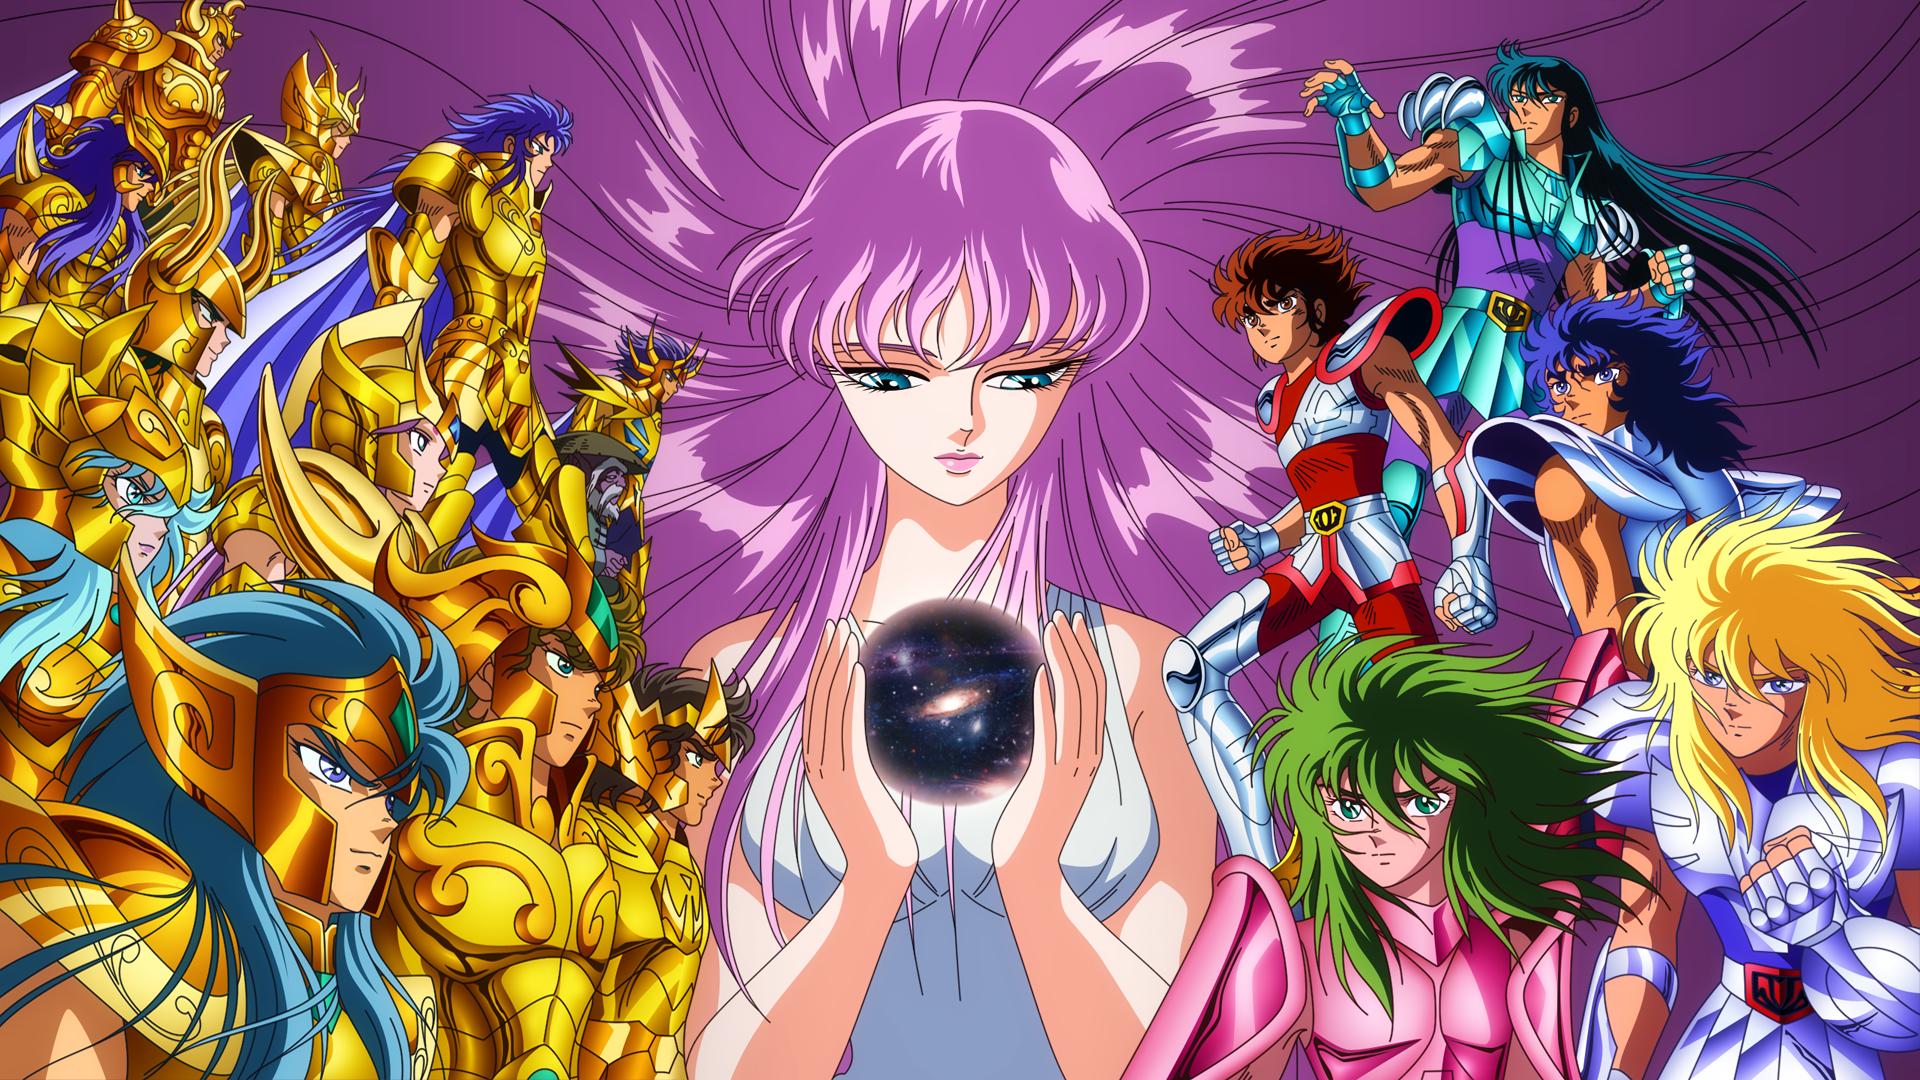 Saint Seiya Virgo Shaka Wallpaper Posted By Ryan Peltier